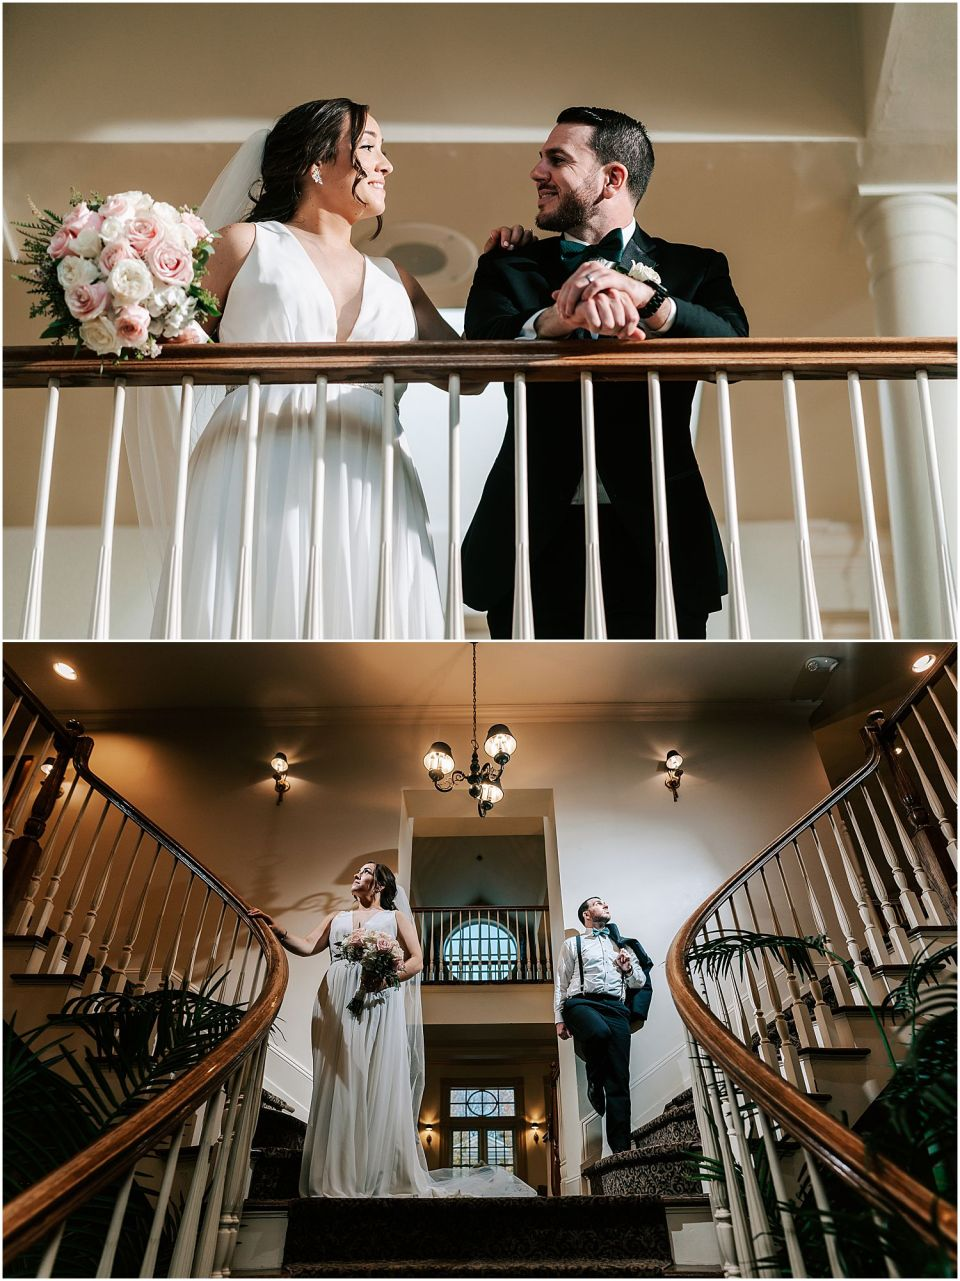 intimate portraits of the bride and groom at their Olde Mill Inn Wedding